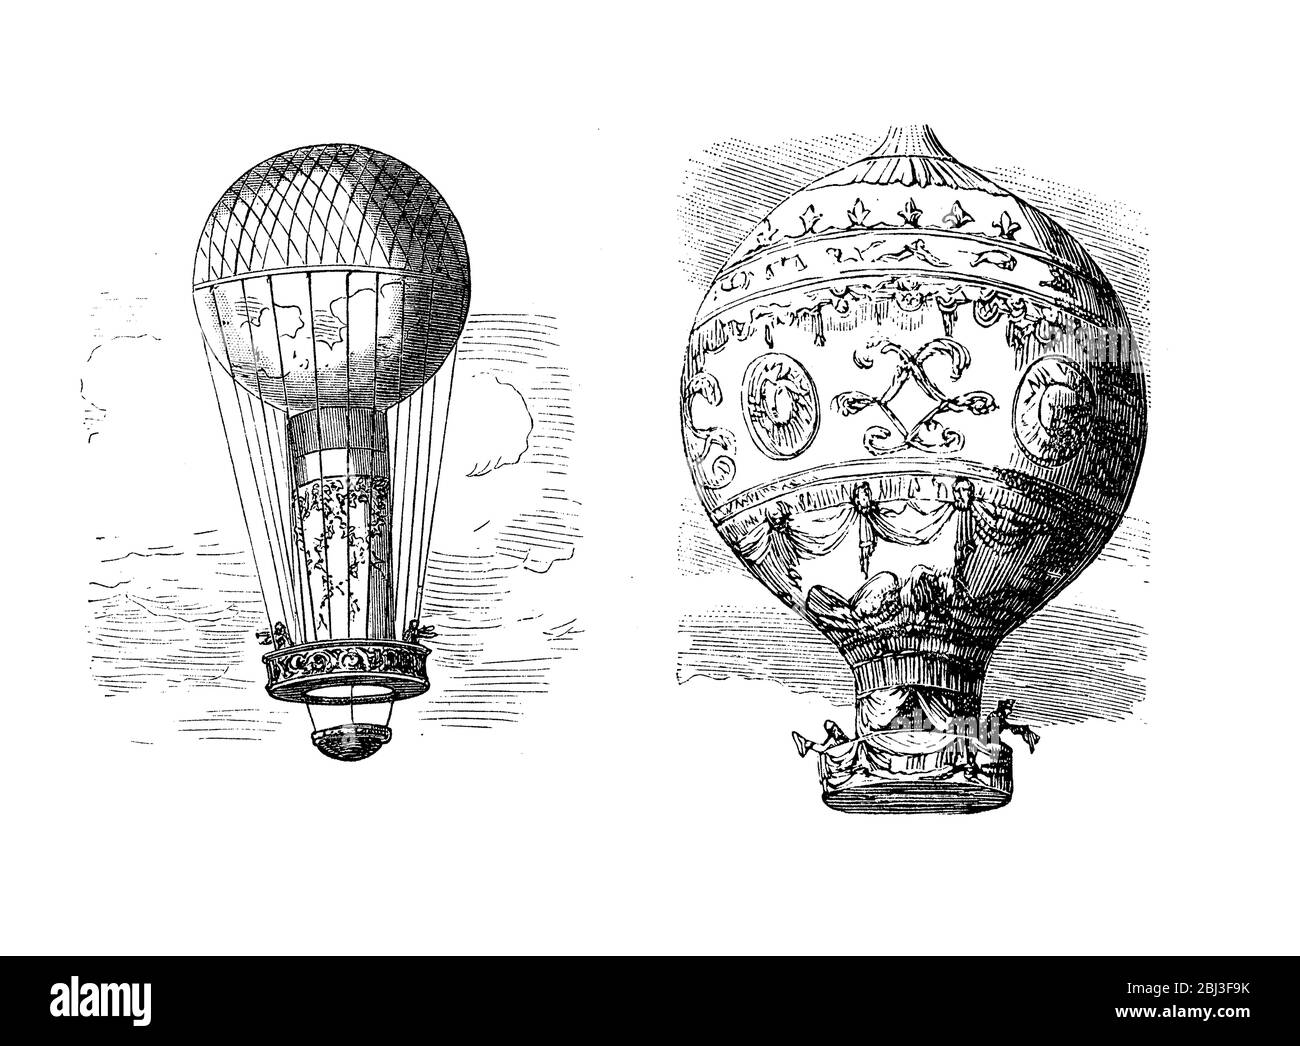 The first untethered balloon flight by Pilatre de Rozier and the Marquis d'Arlandes from de Bois de Boulogne Paris in 1783 Stock Photo